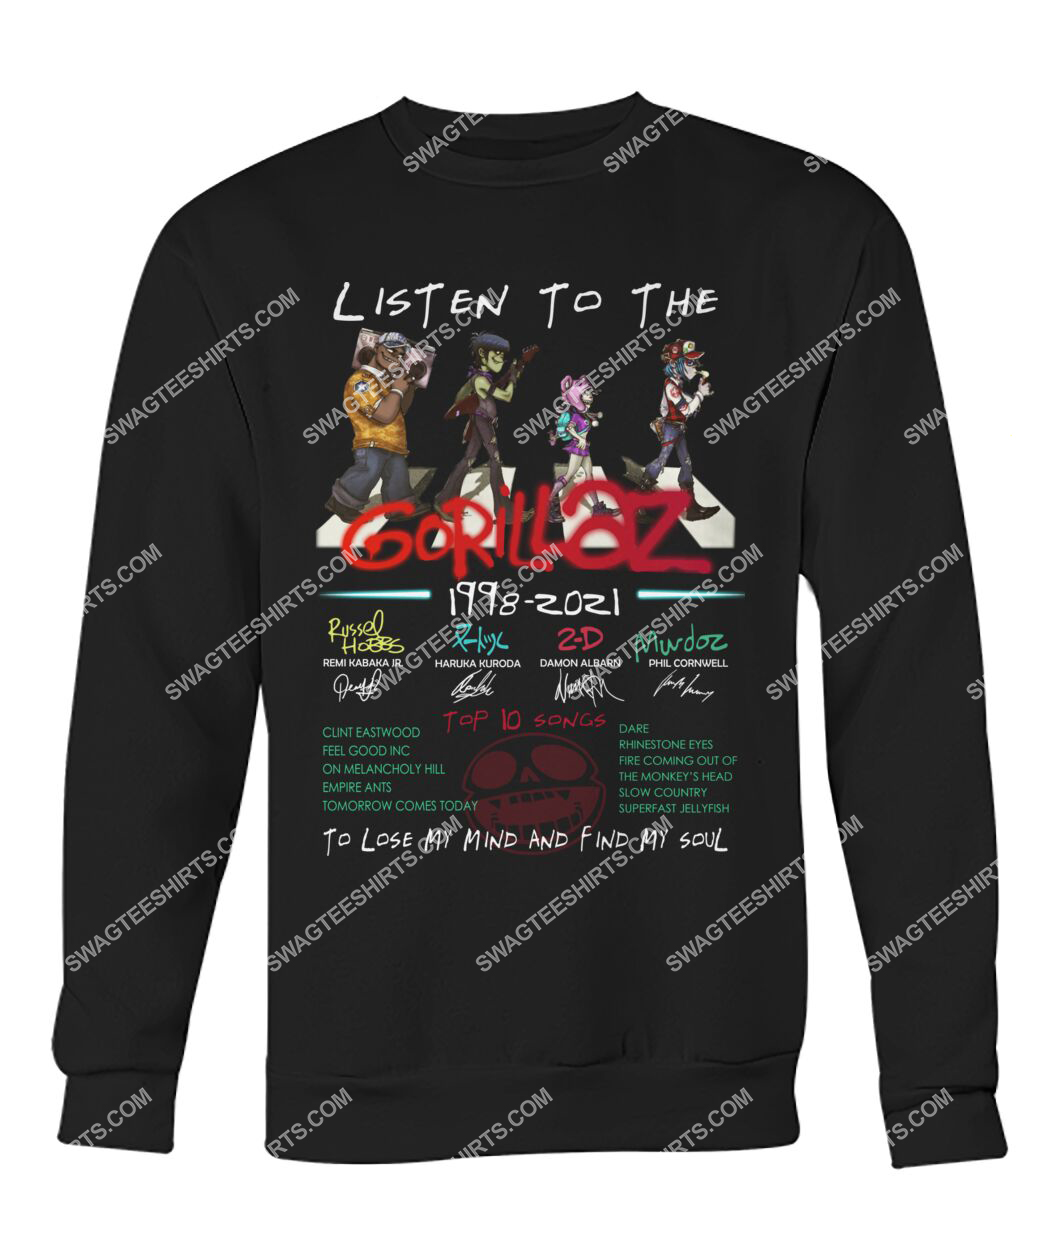 listen to the gorillaz to lose my mind and find my soul sweatshirt 1